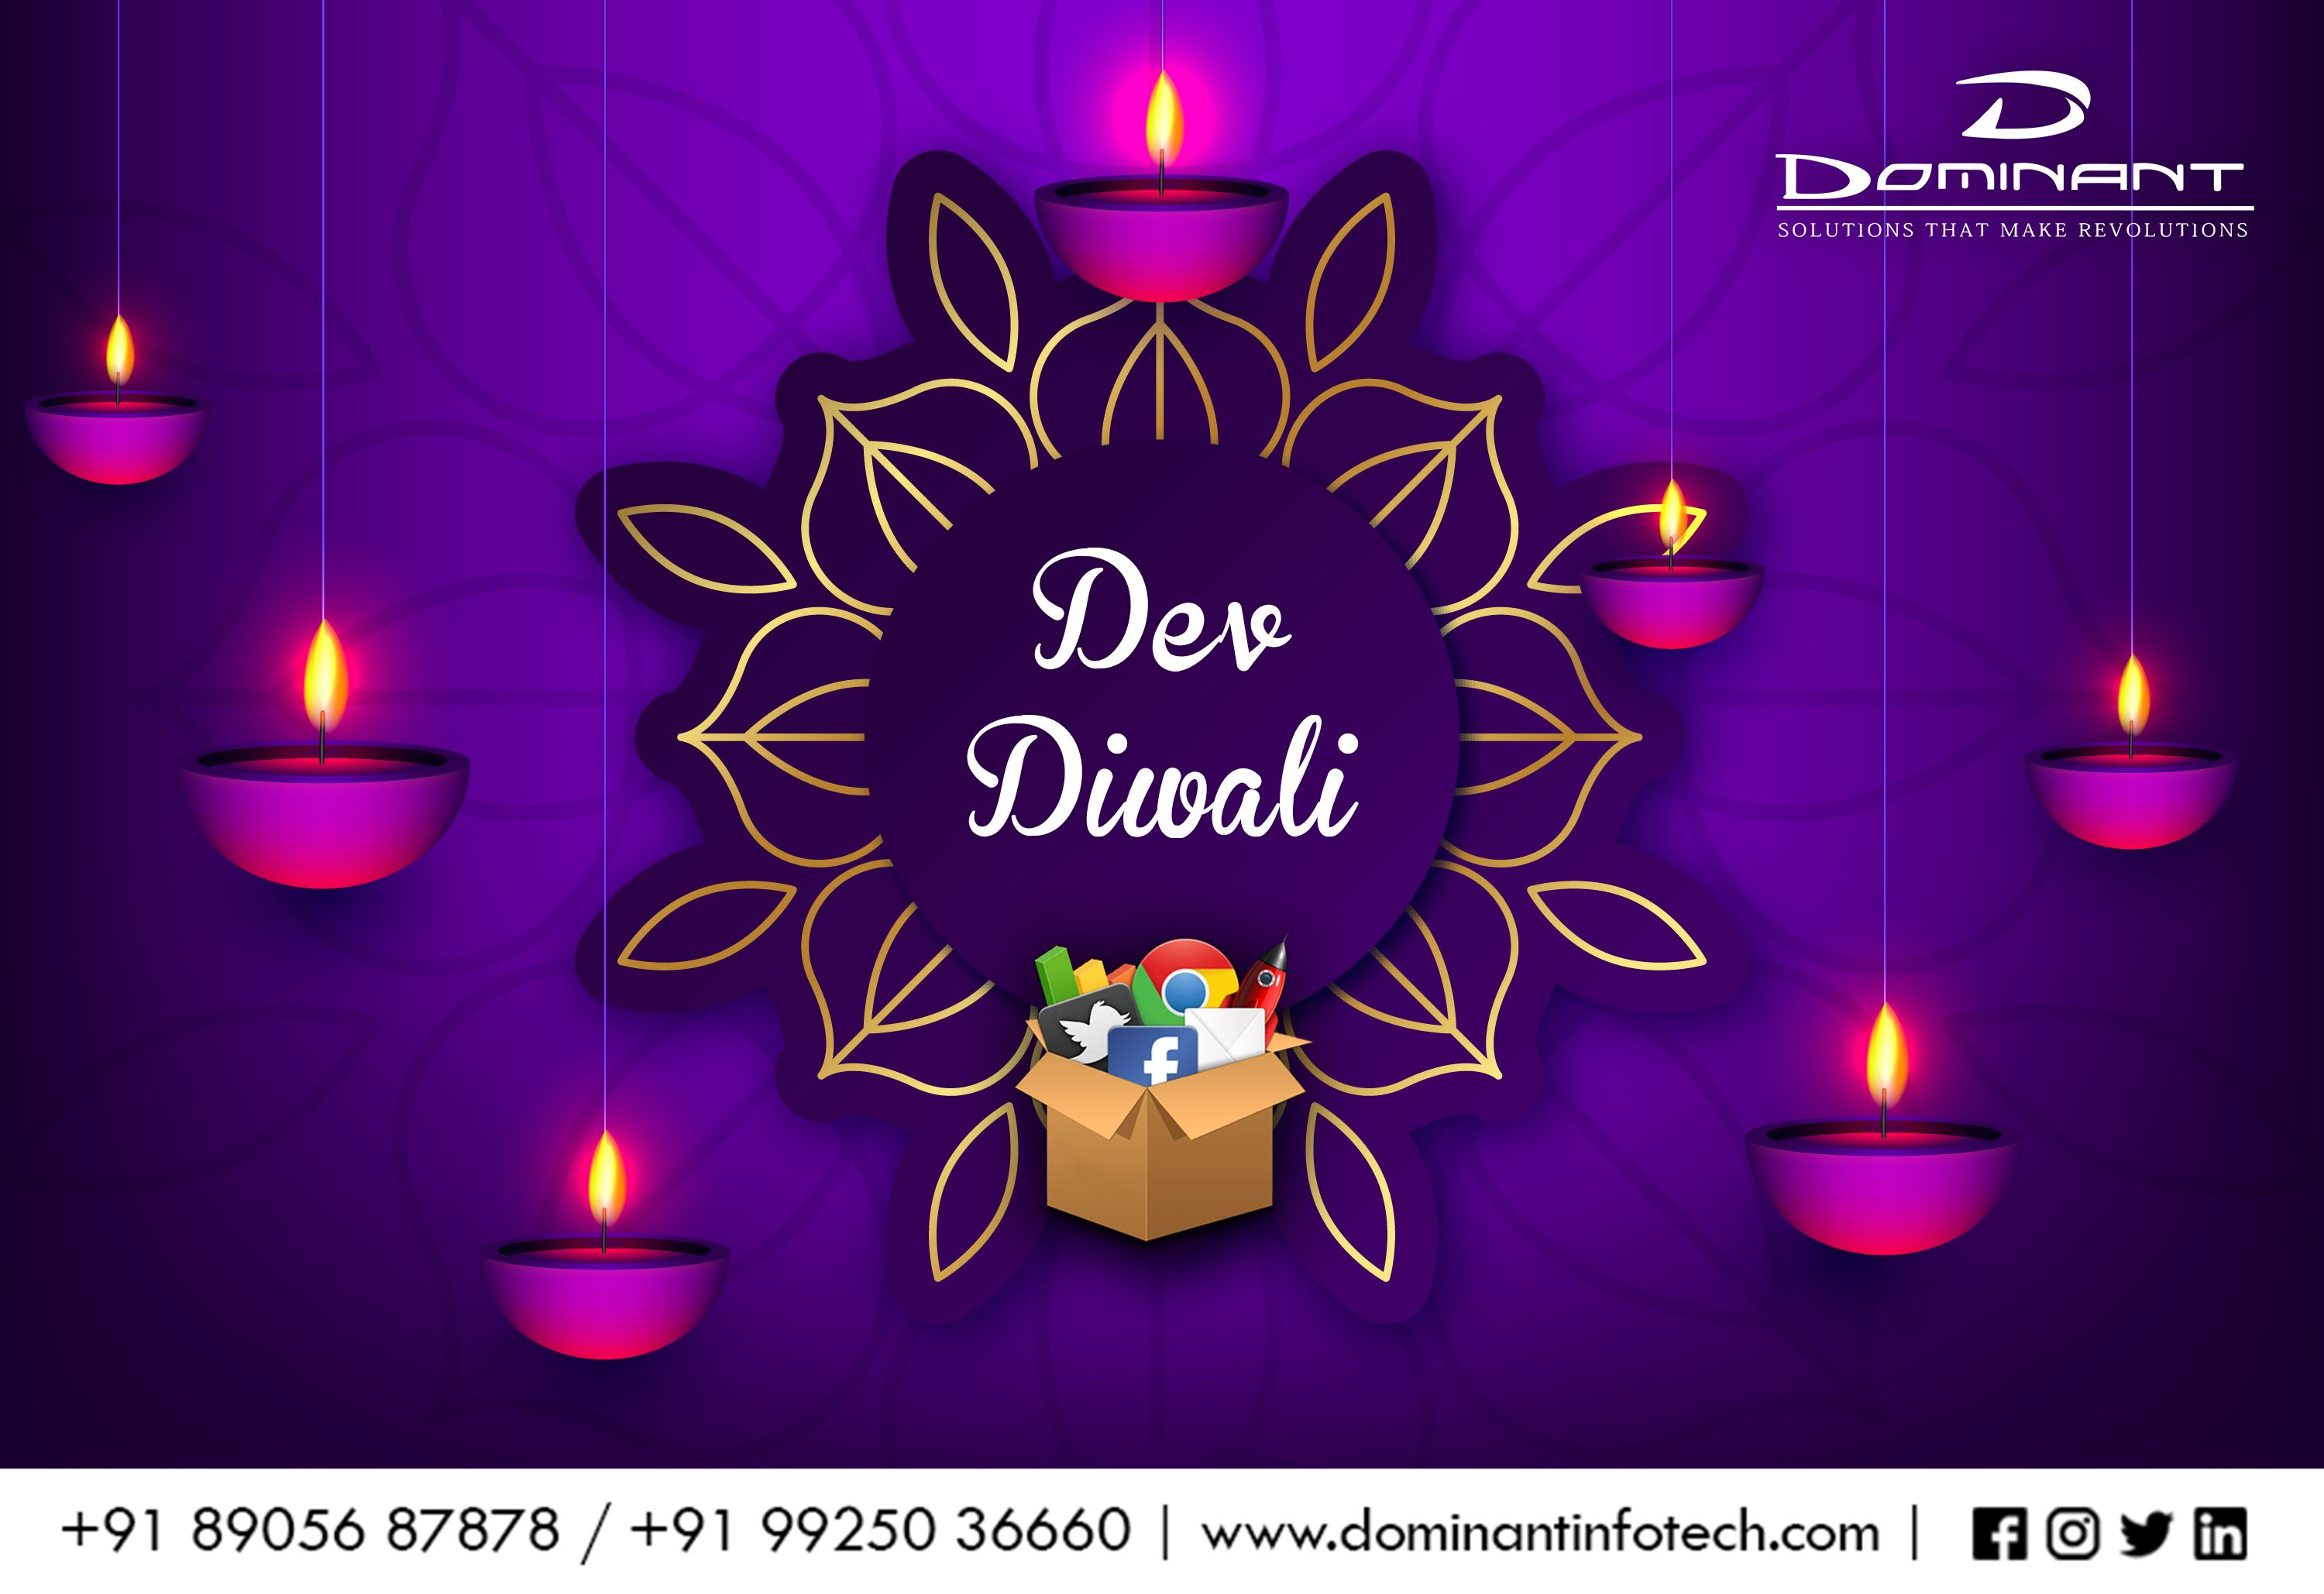 May the beauty of Dev Diwali fill your home with Happiness